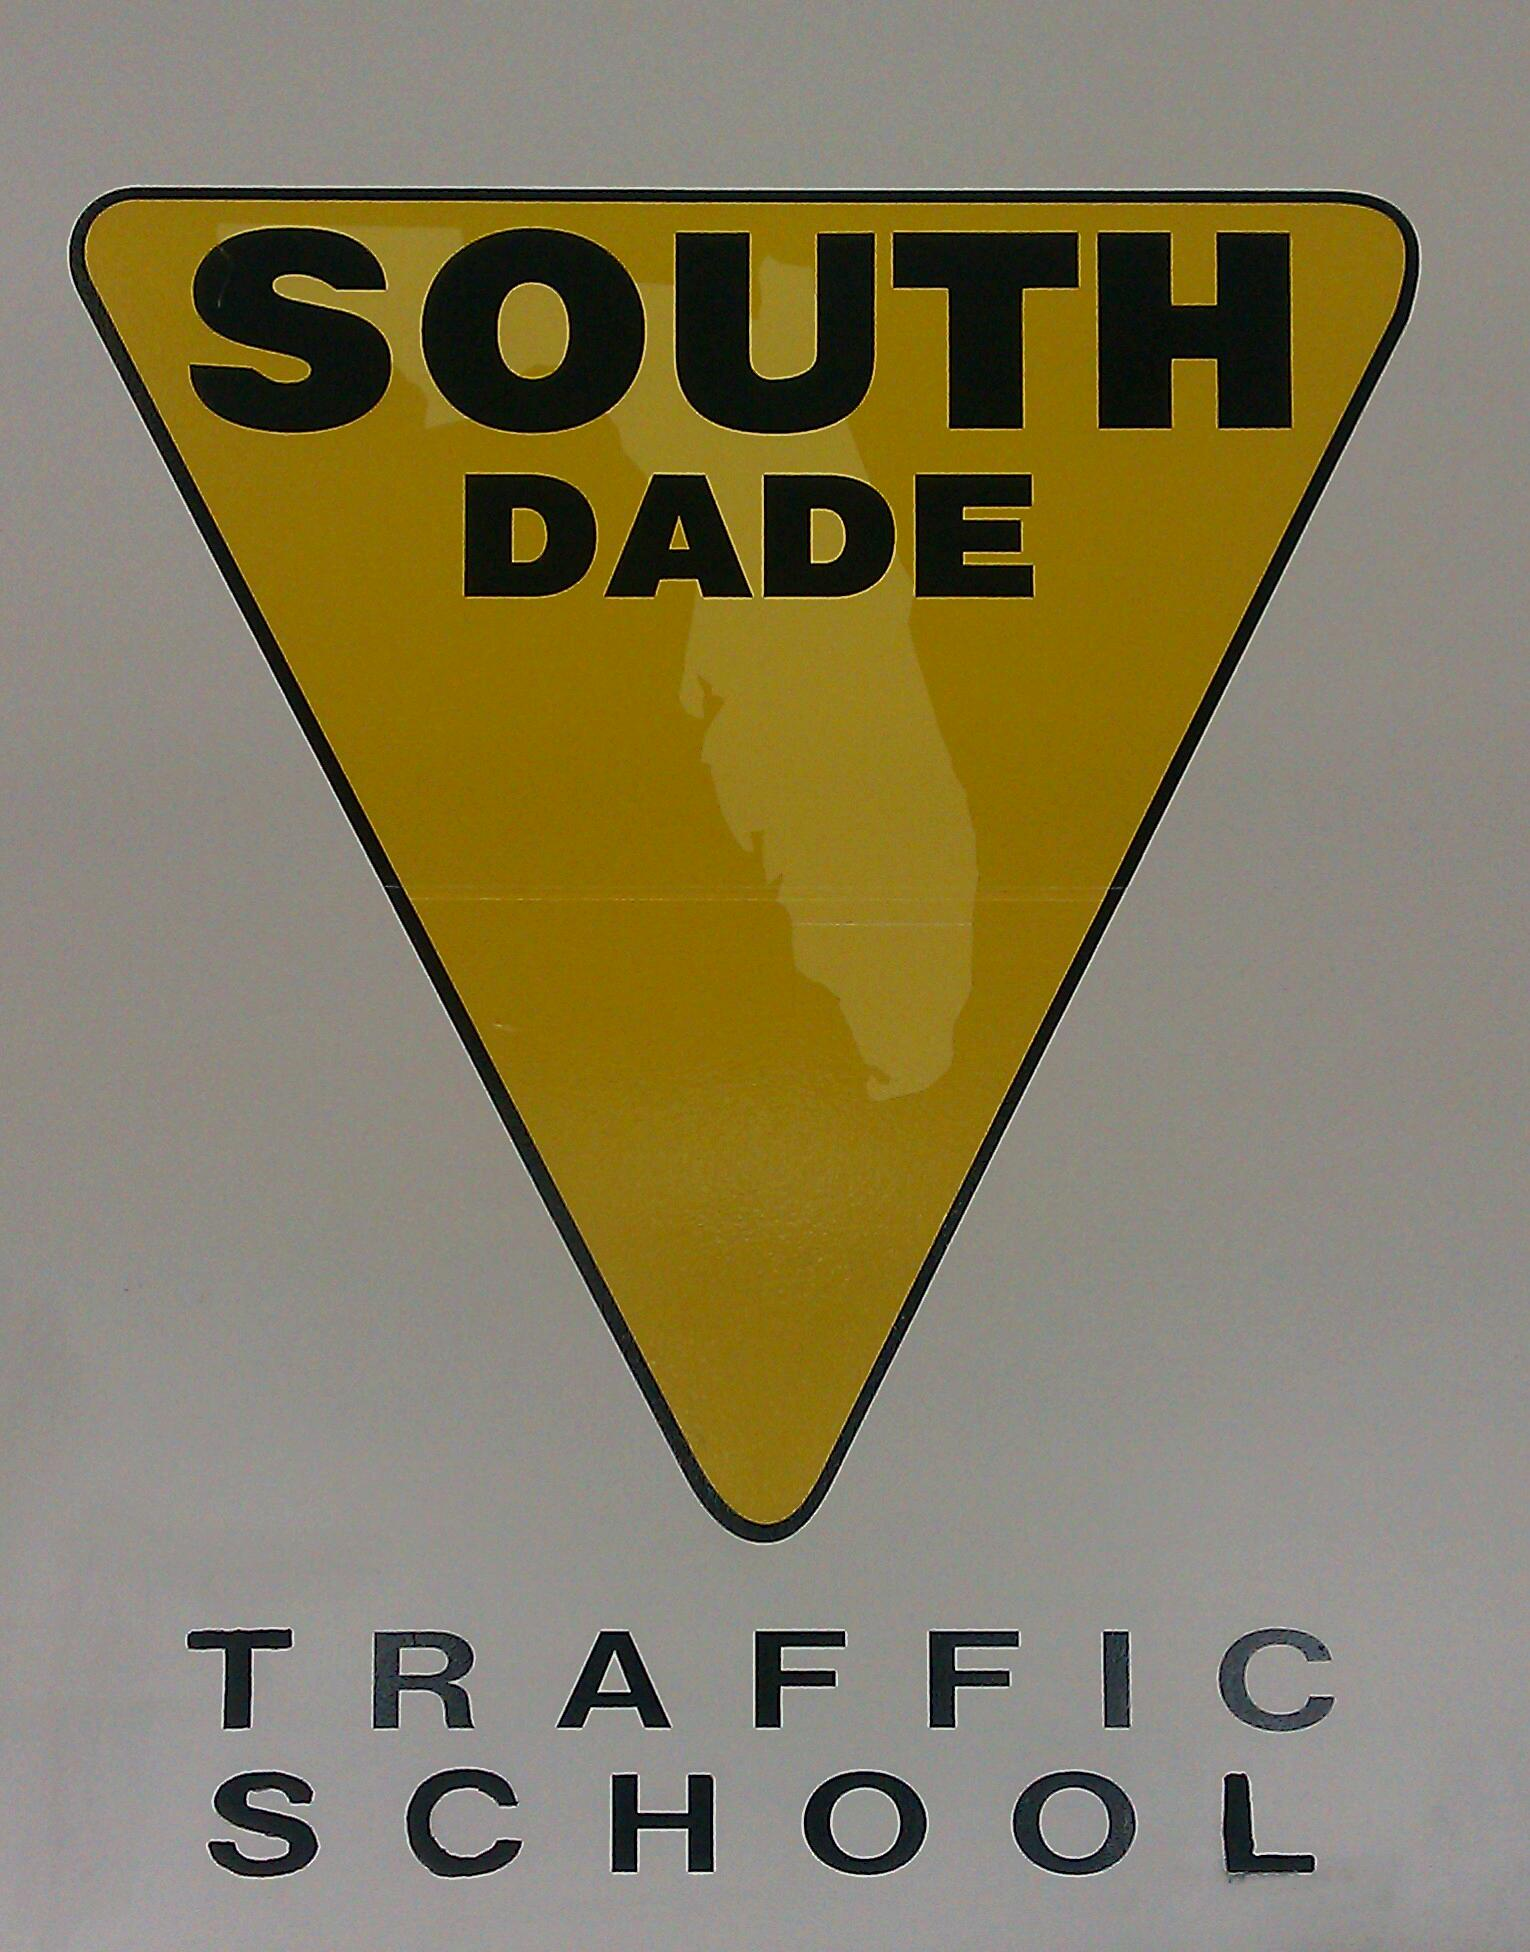 South Florida Safety Program and Traffic Schools.